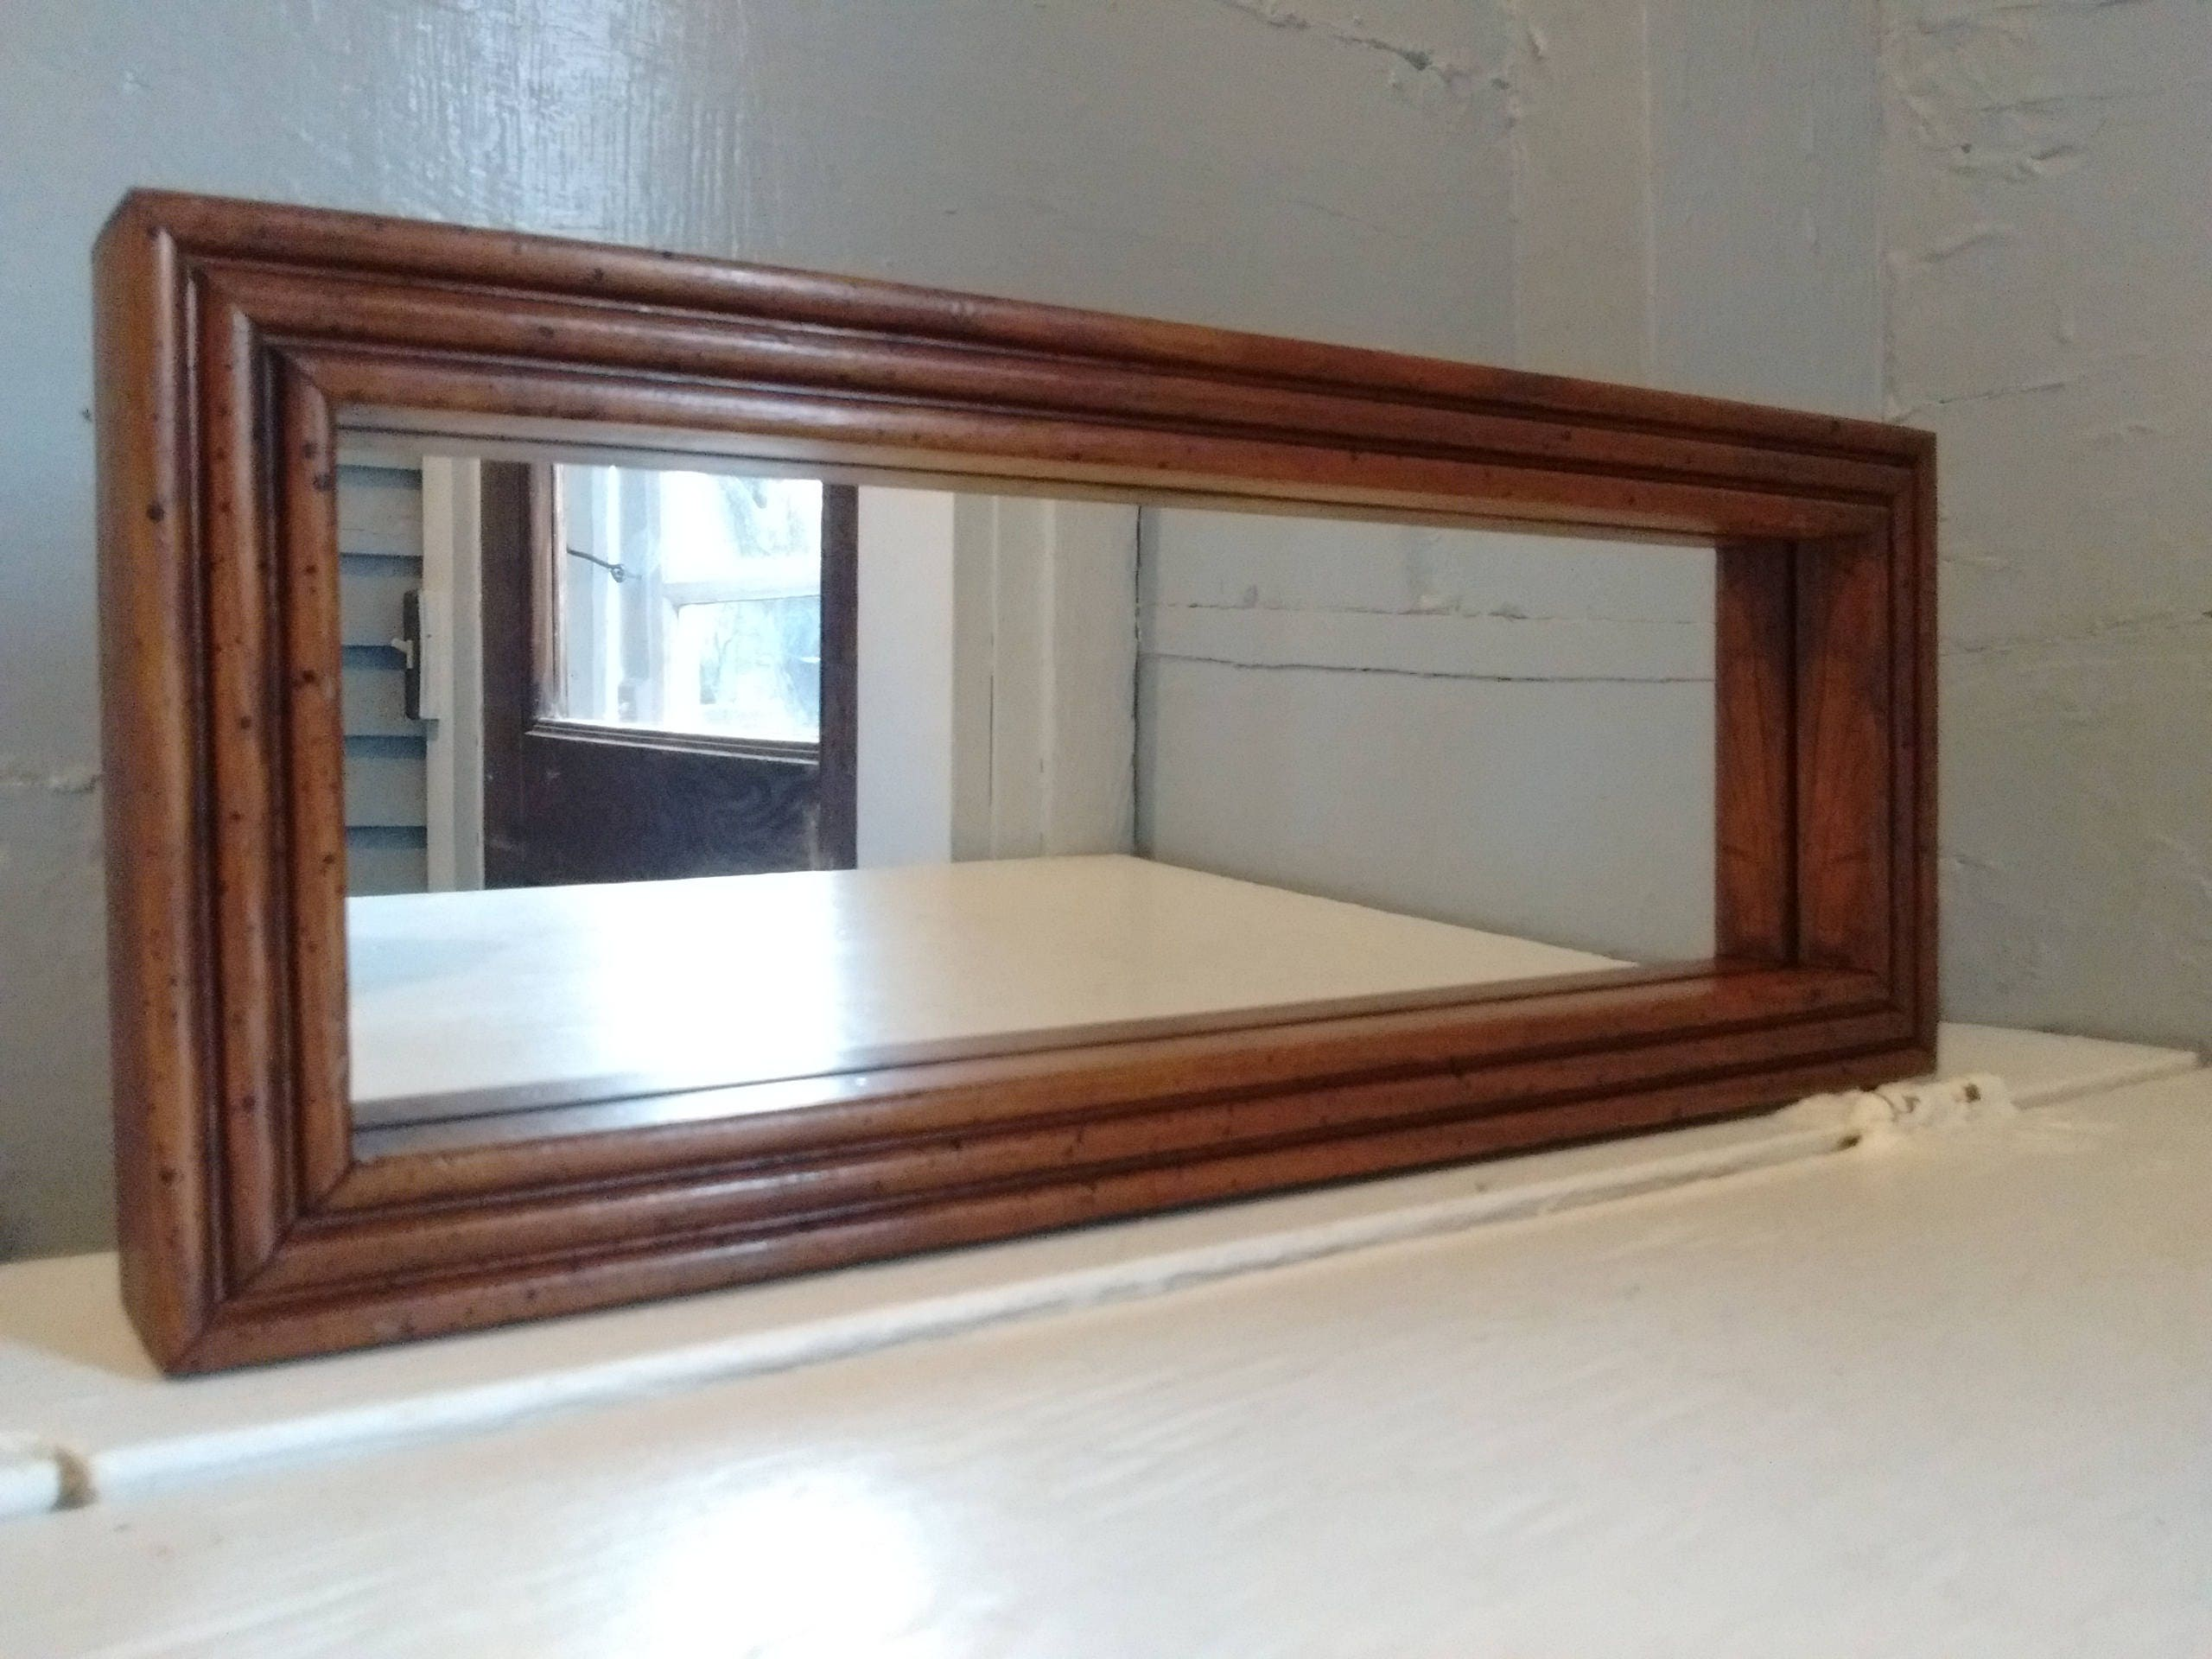 Vintage Mirror Small Rectangle Framed Mirror Wall Mirror Accent Mirror Entrance Mirror Teen Room Decor Rustic Rhymeswithdaughter